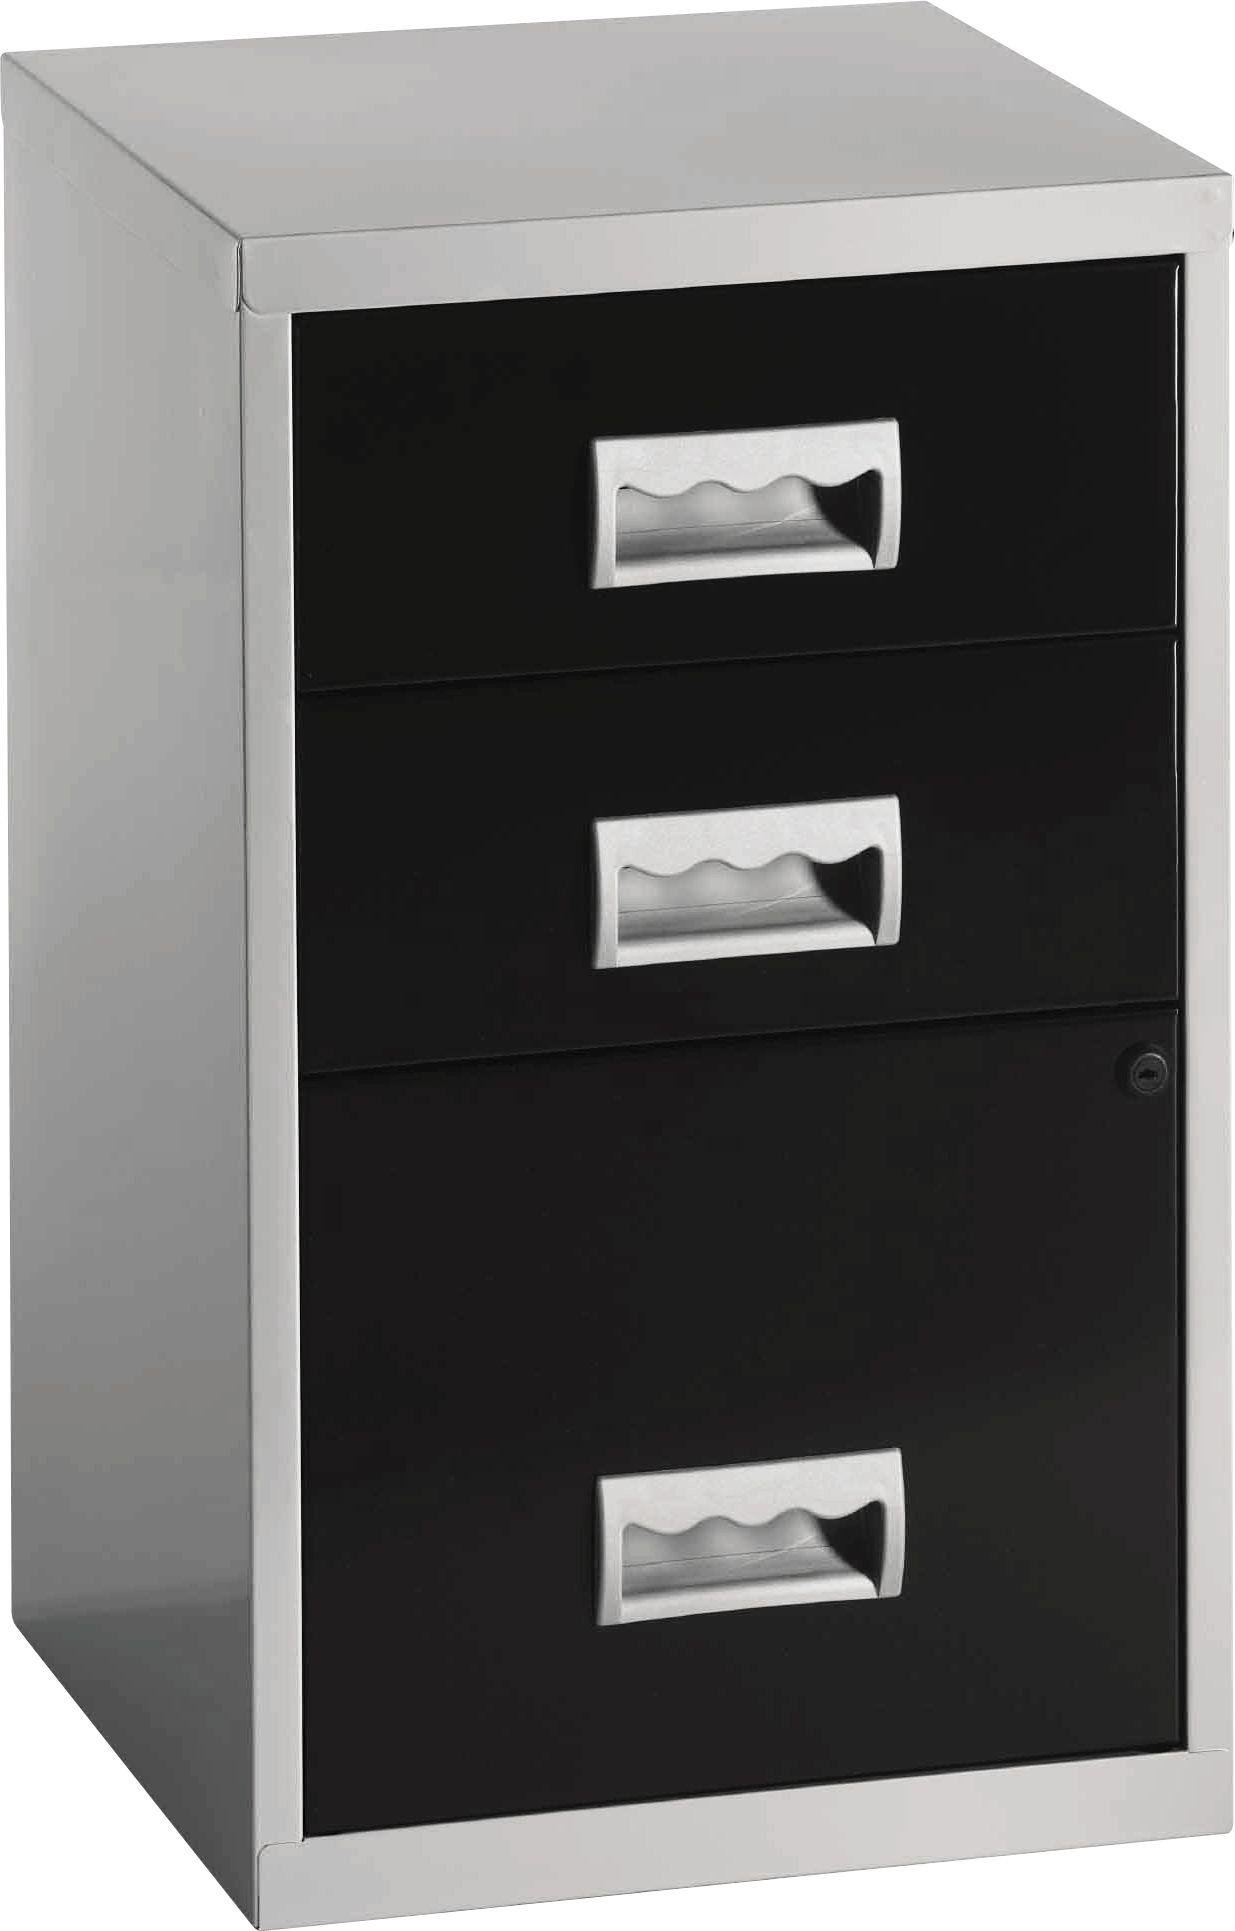 Filing Cabinets And Office Storage Page 1 Argos Price